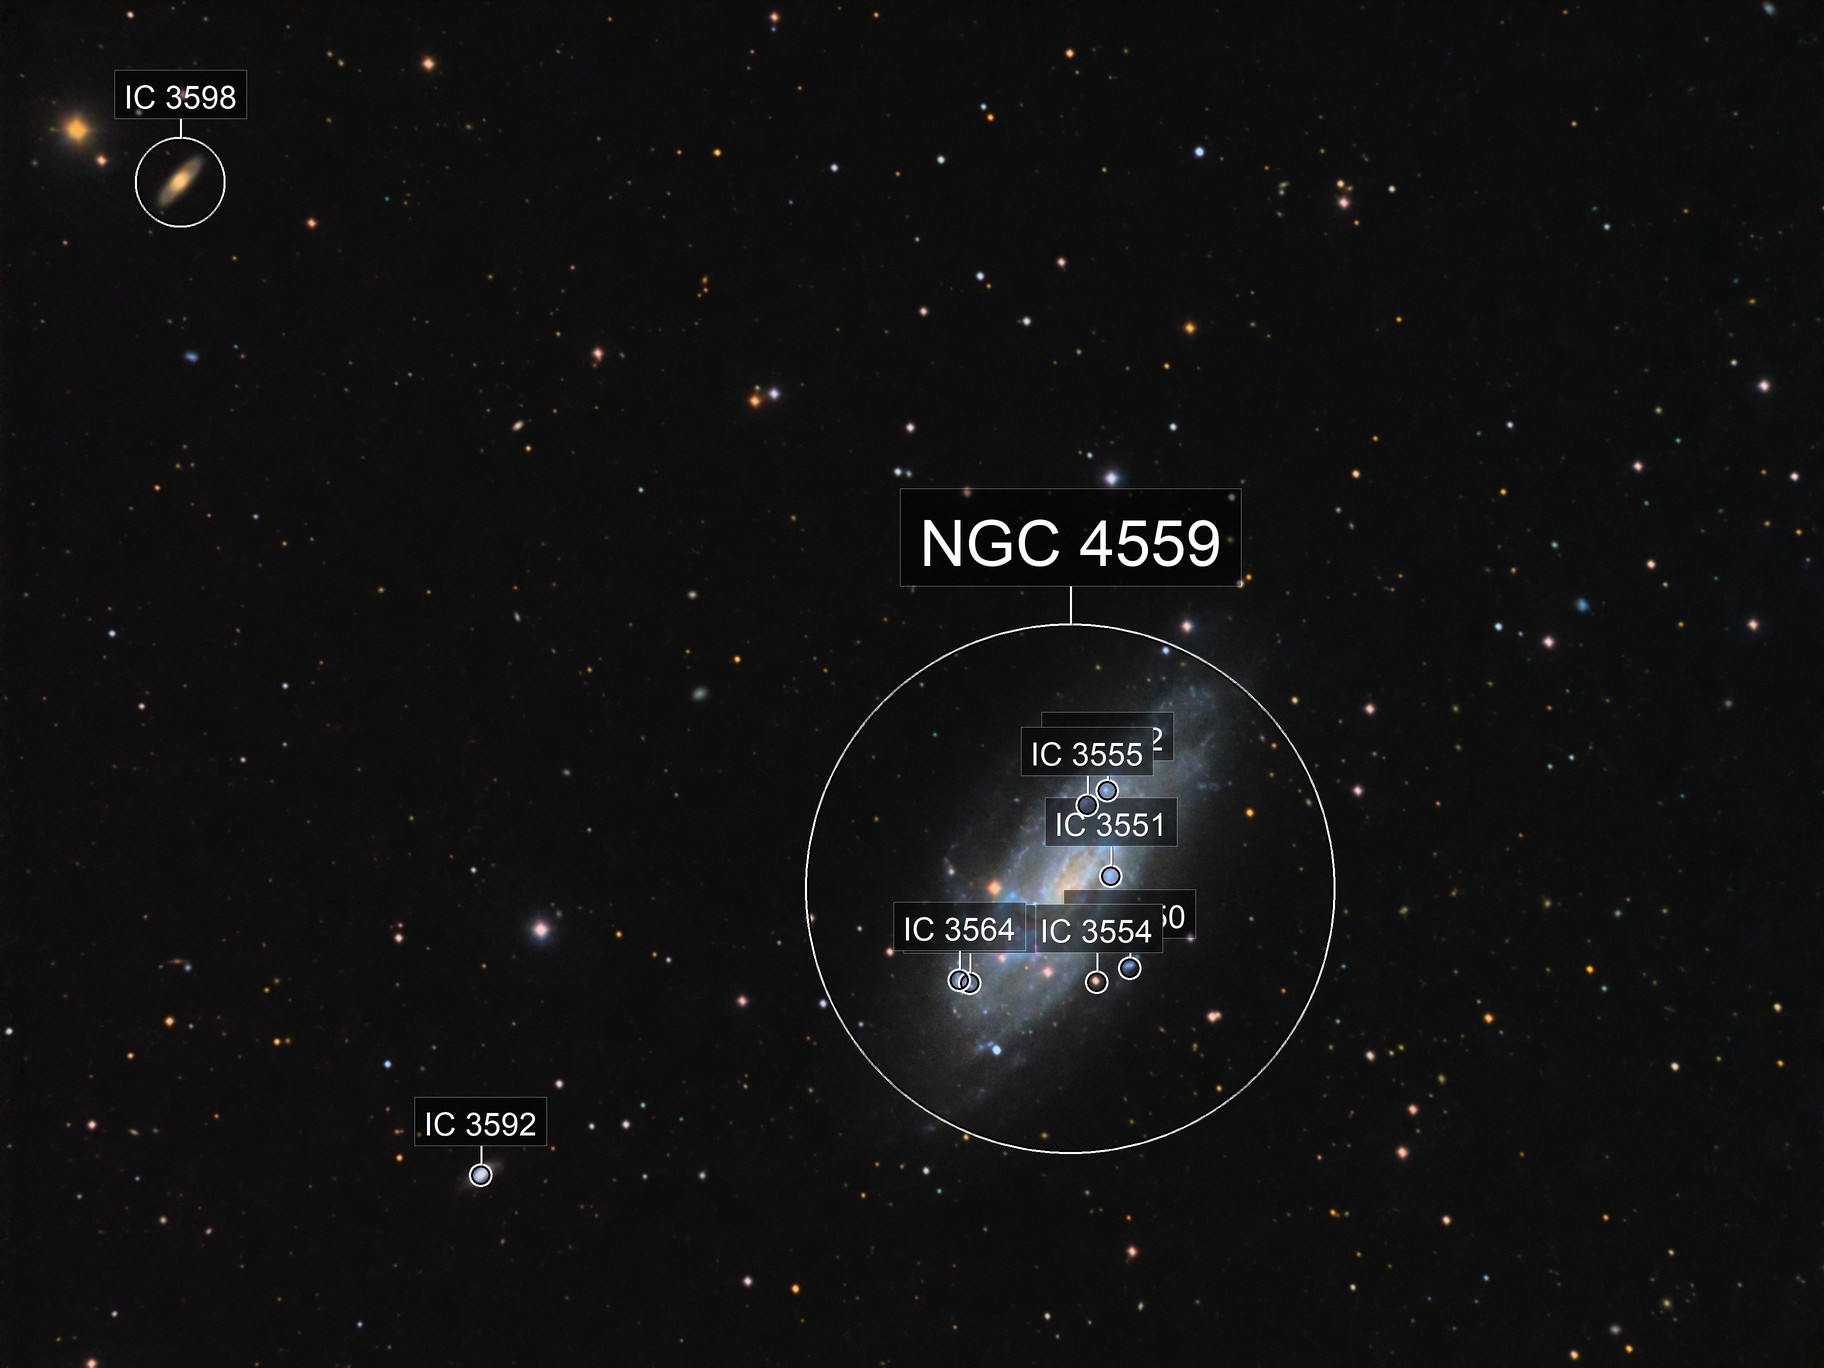 NGC 4559 in Coma Berenices